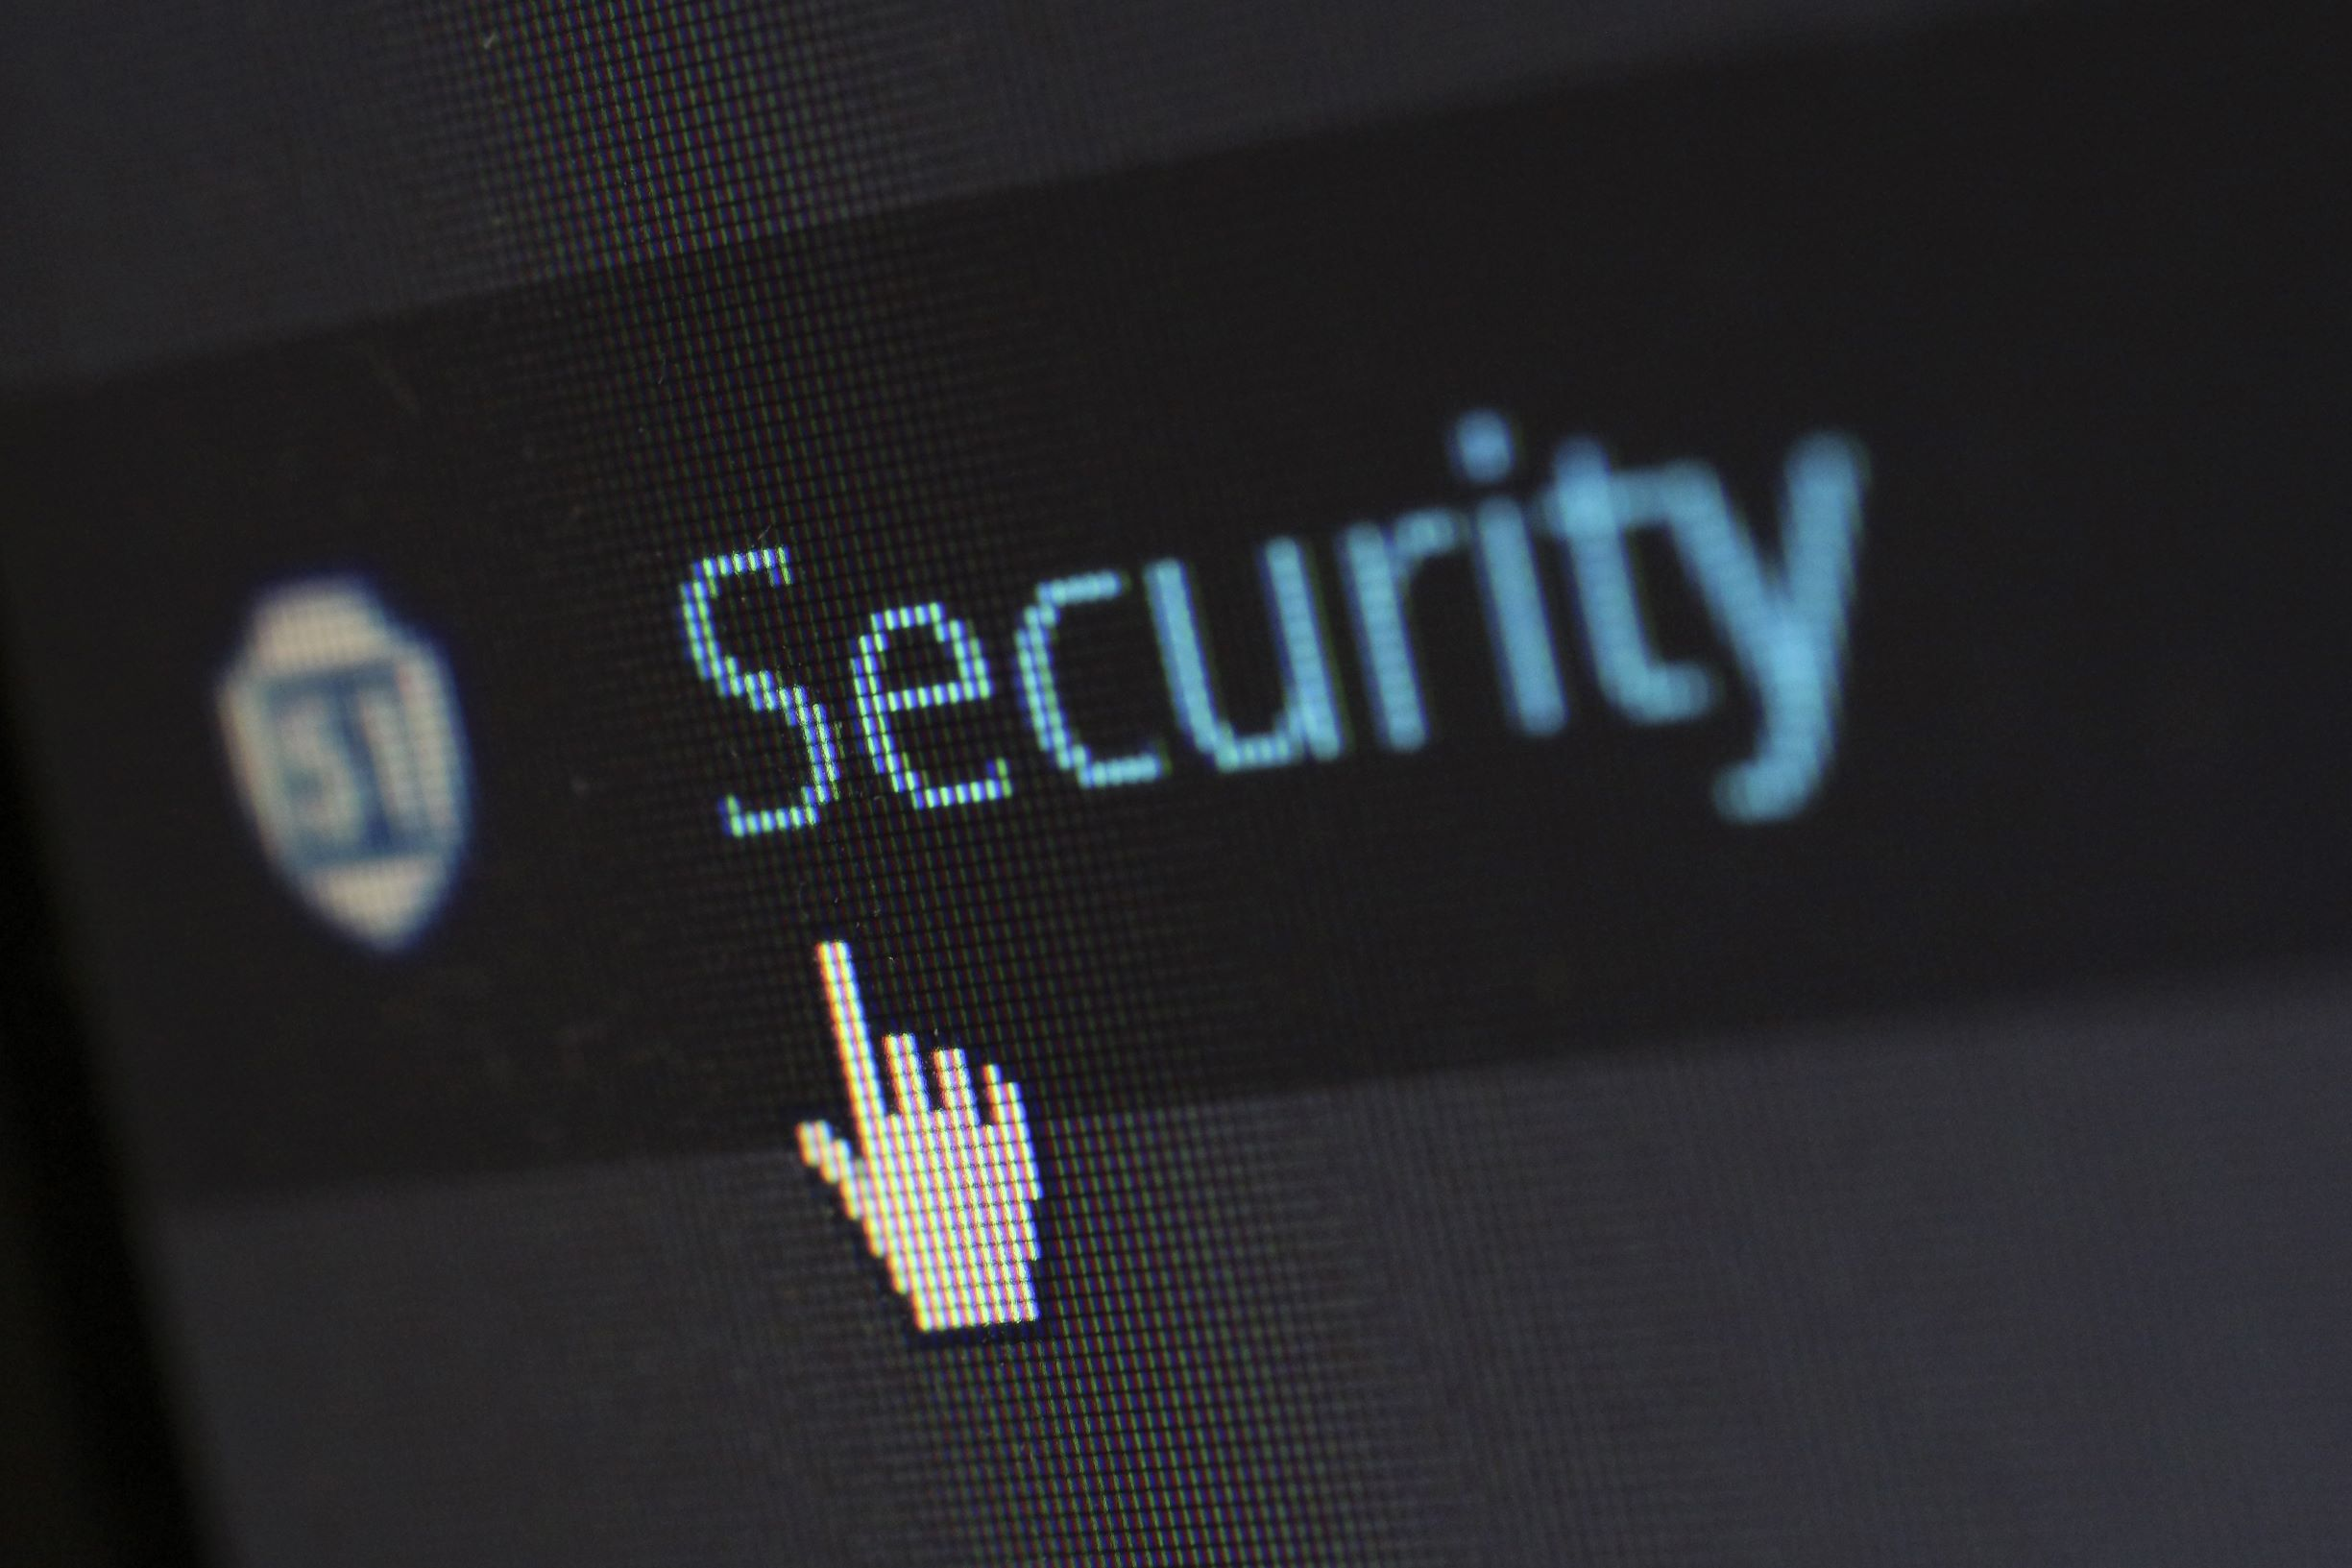 How To Access Images Securely with OAuth 2.0